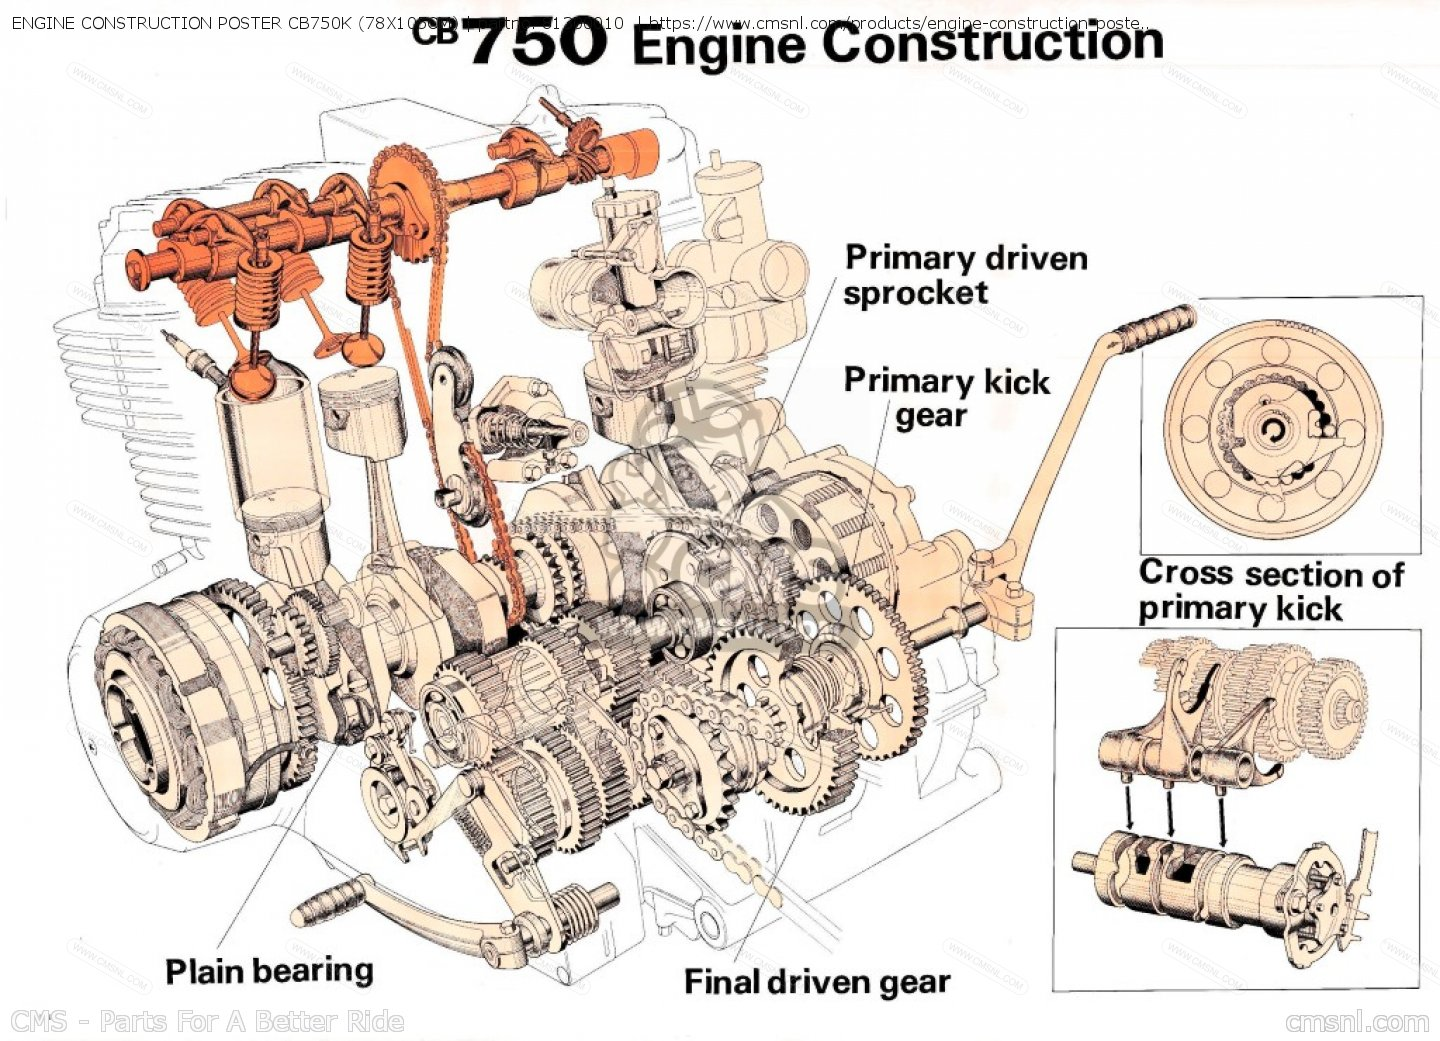 engine construction poster cb750k 78x105cm_big81300010 01_ccd4 engine construction poster cb750k (78x105cm) other 81300010 cb750 engine diagram at alyssarenee.co